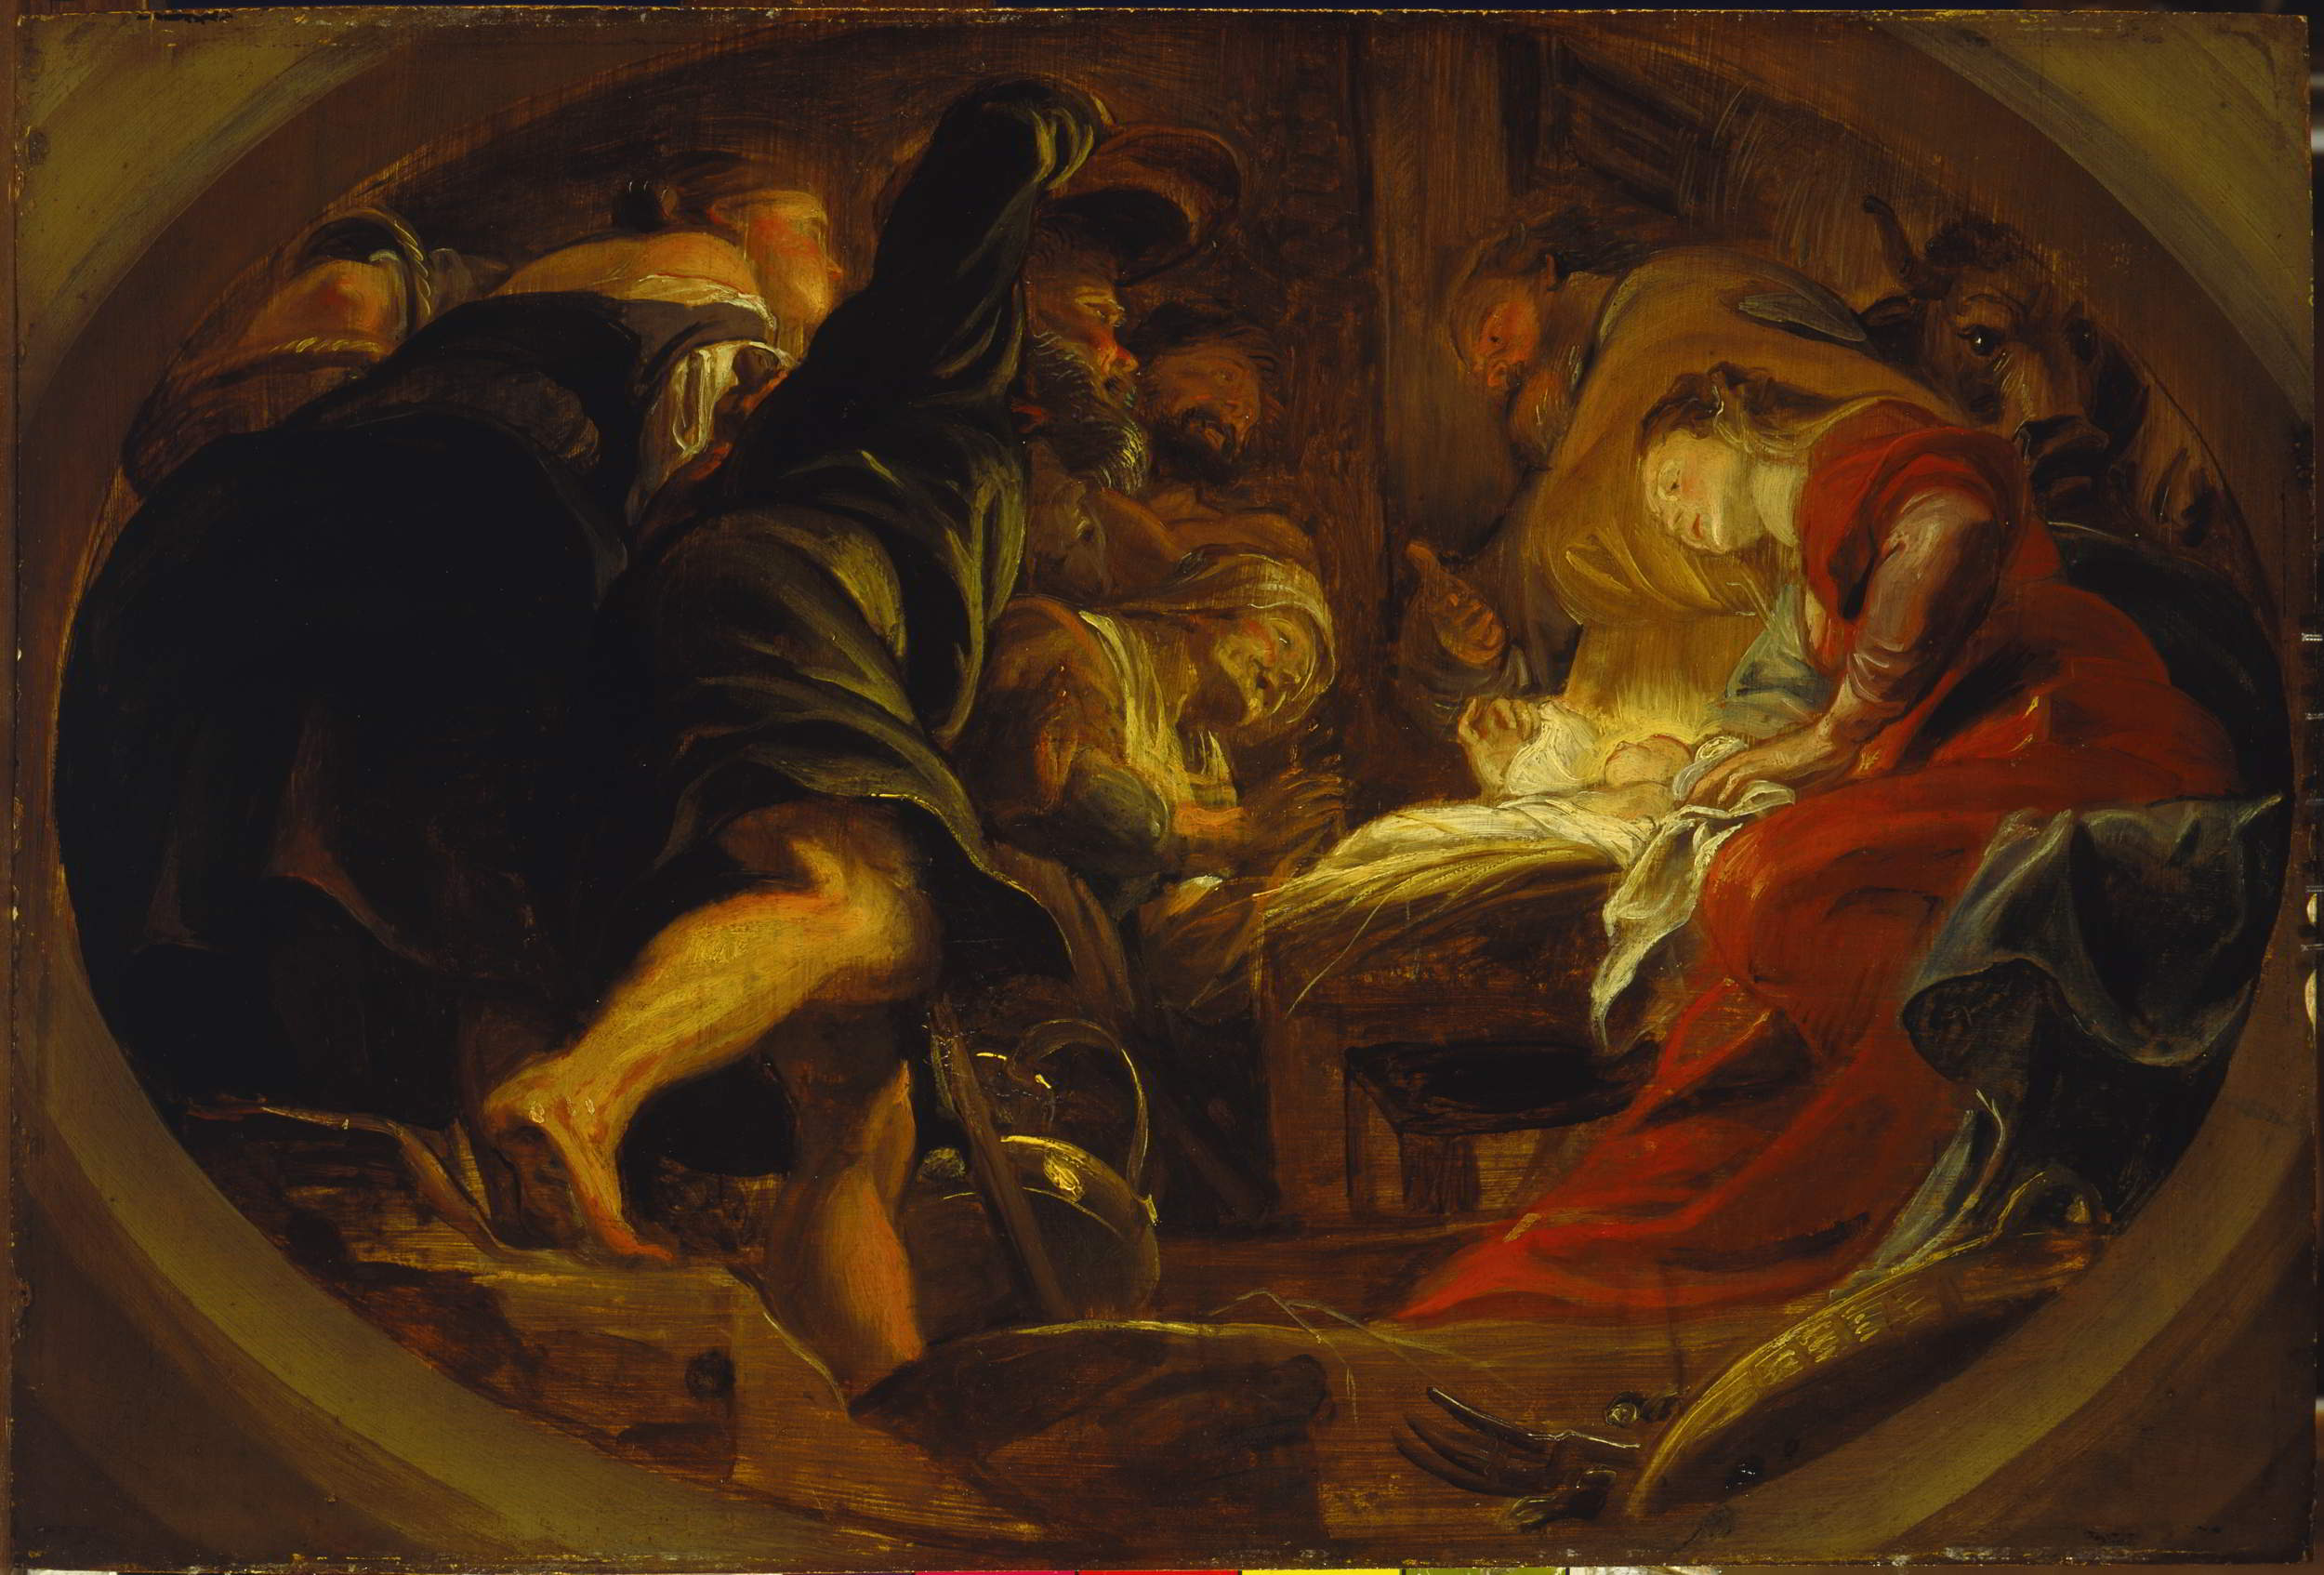 Rubens (1577-1649), <em>Adoration of the Shepherds</em>, 1620 Kunsthistorisches Museum, Vienna